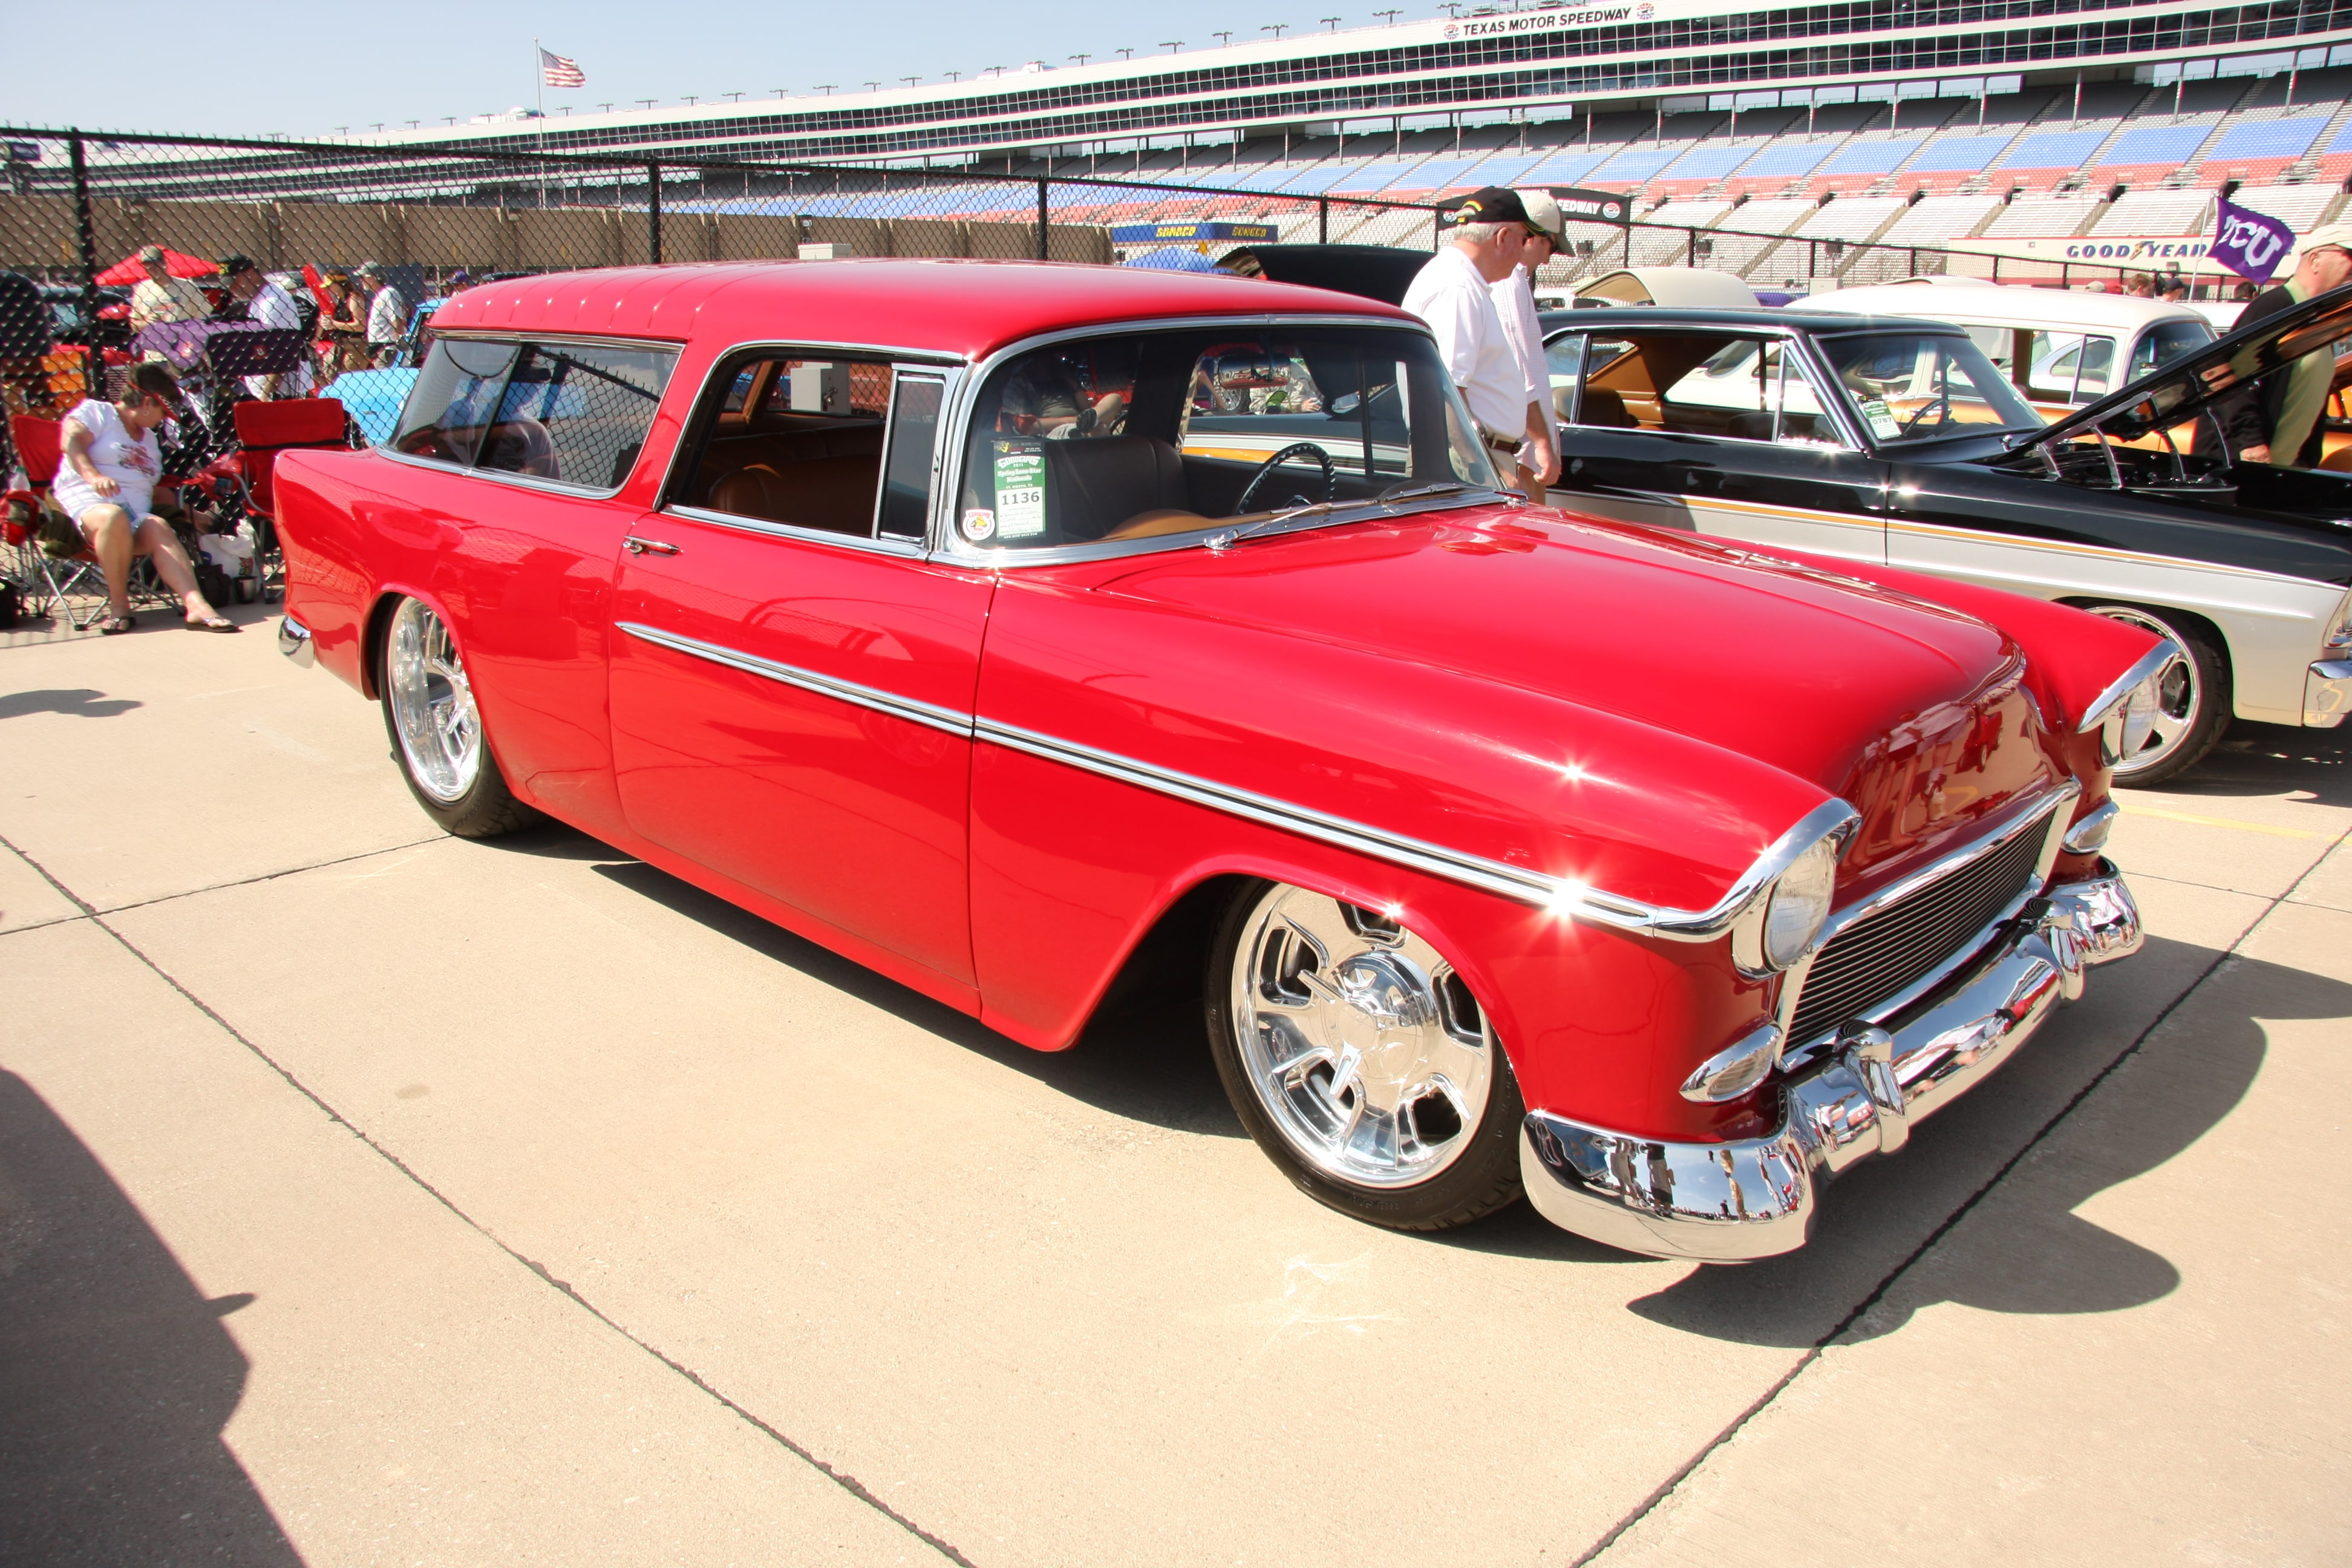 3888x2592 - Chevrolet Nomad Wallpapers 22